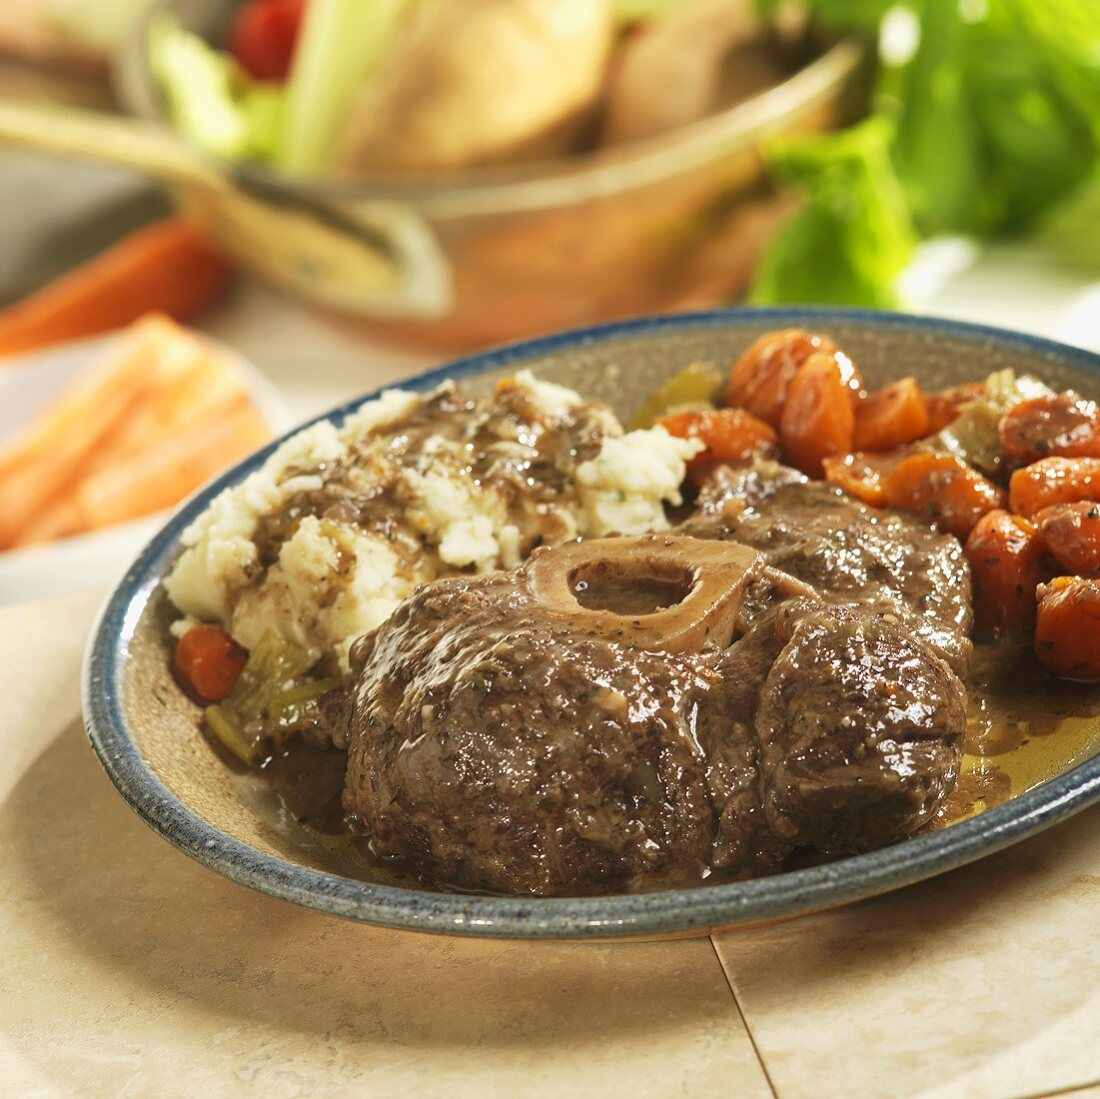 Braised Beef Shank with Carrots and Potatoes